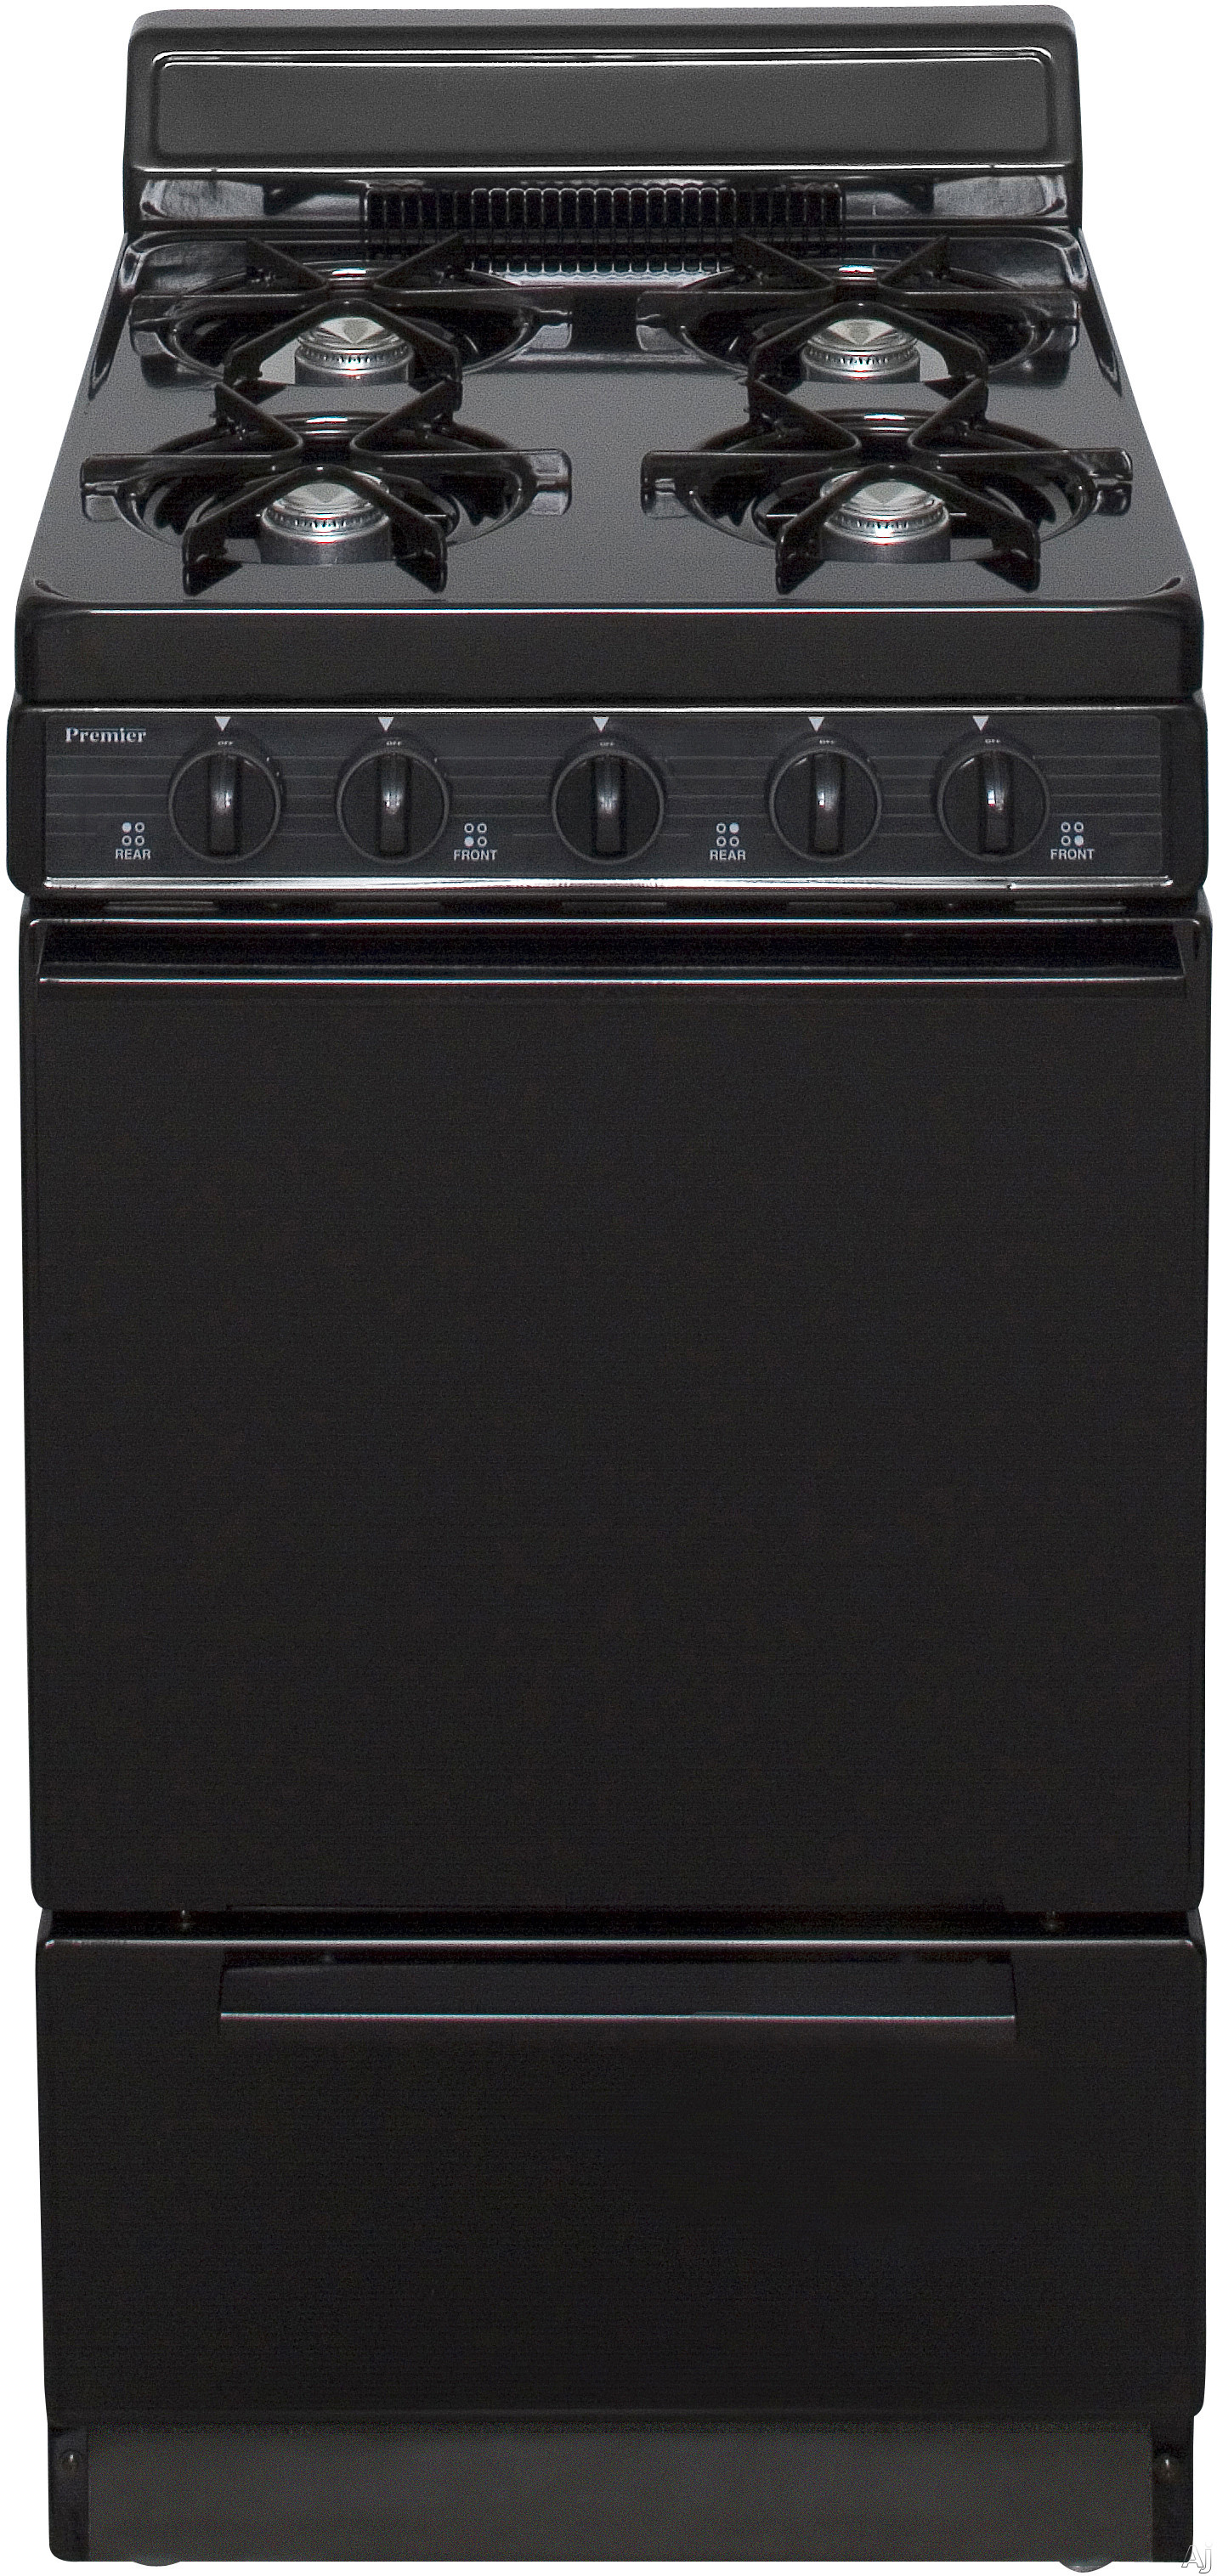 Premier BAK100BP 20 Inch Freestanding Gas Range with 4 Open Burners Battery Spark Ignition 17 000 BTU Burner and 4 Inch Porcelain Backguard Black